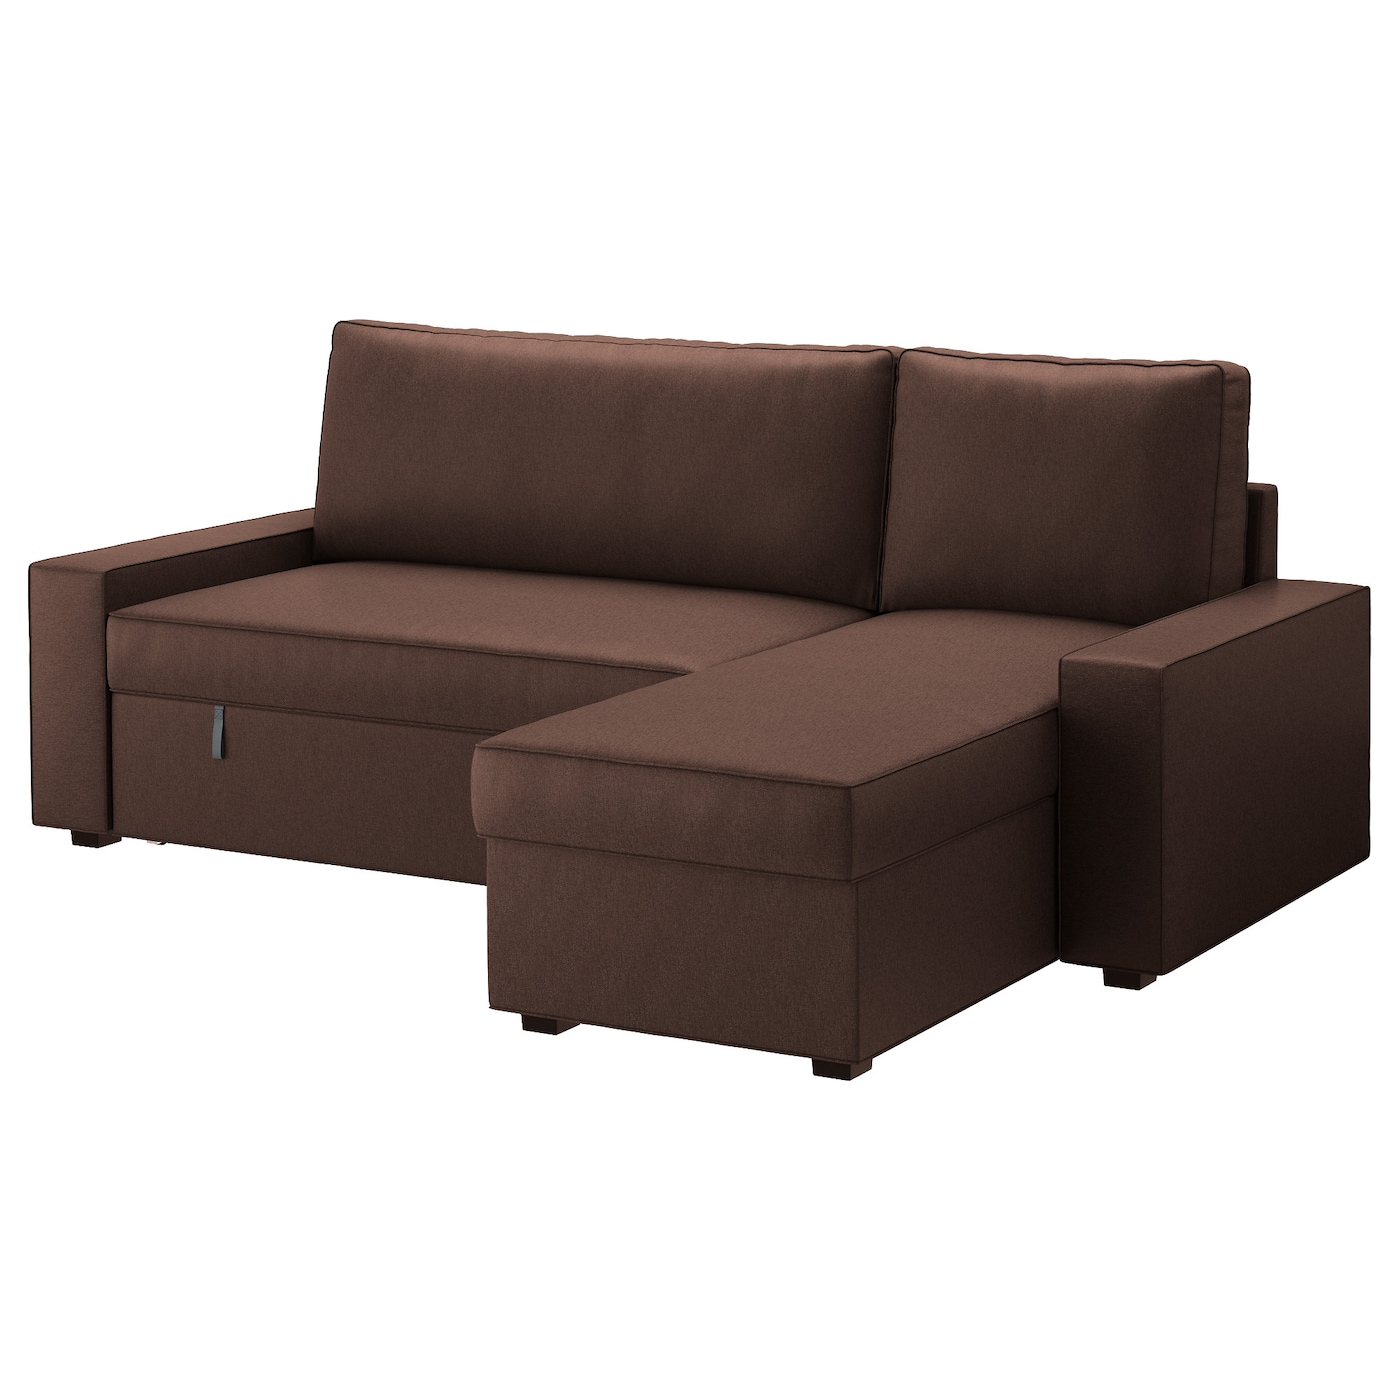 Vilasund sofa bed with chaise longue borred dark brown ikea for Sofa cama chaise longue piel